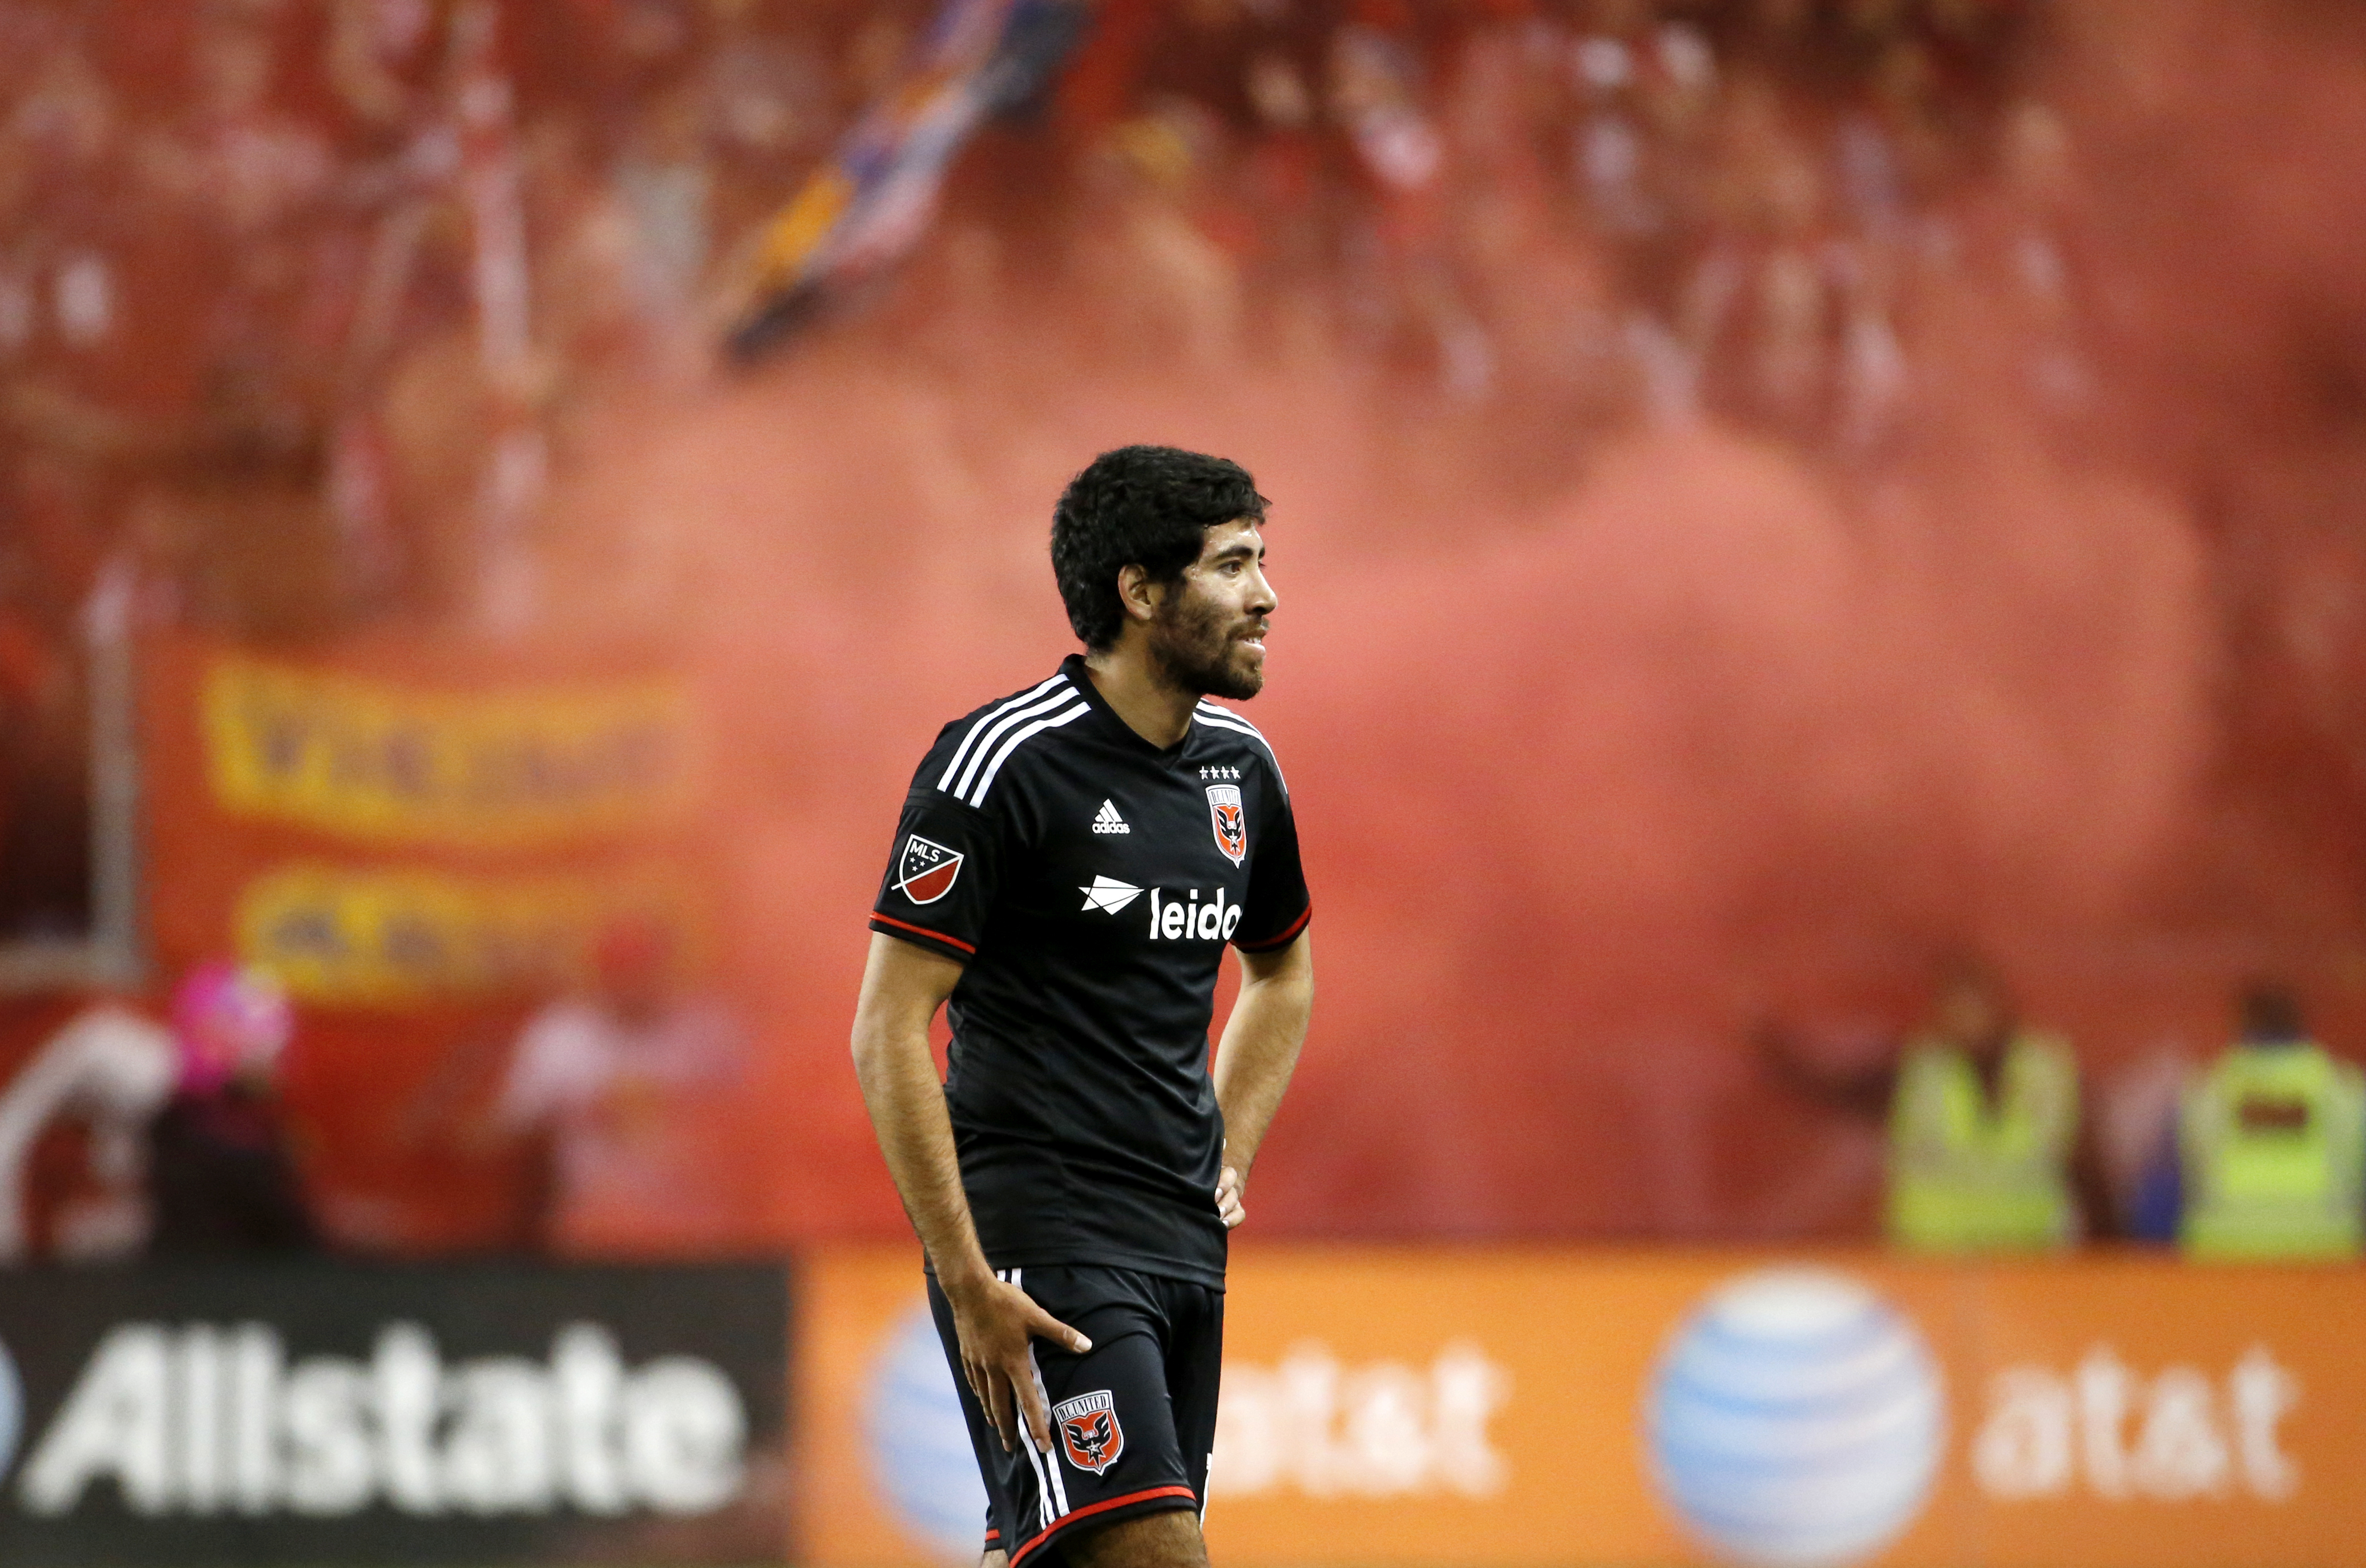 Miguel Aguilar broke into MLS with D.C. United in 2015. He now plays for the Los Angeles Galaxy´s USL team.